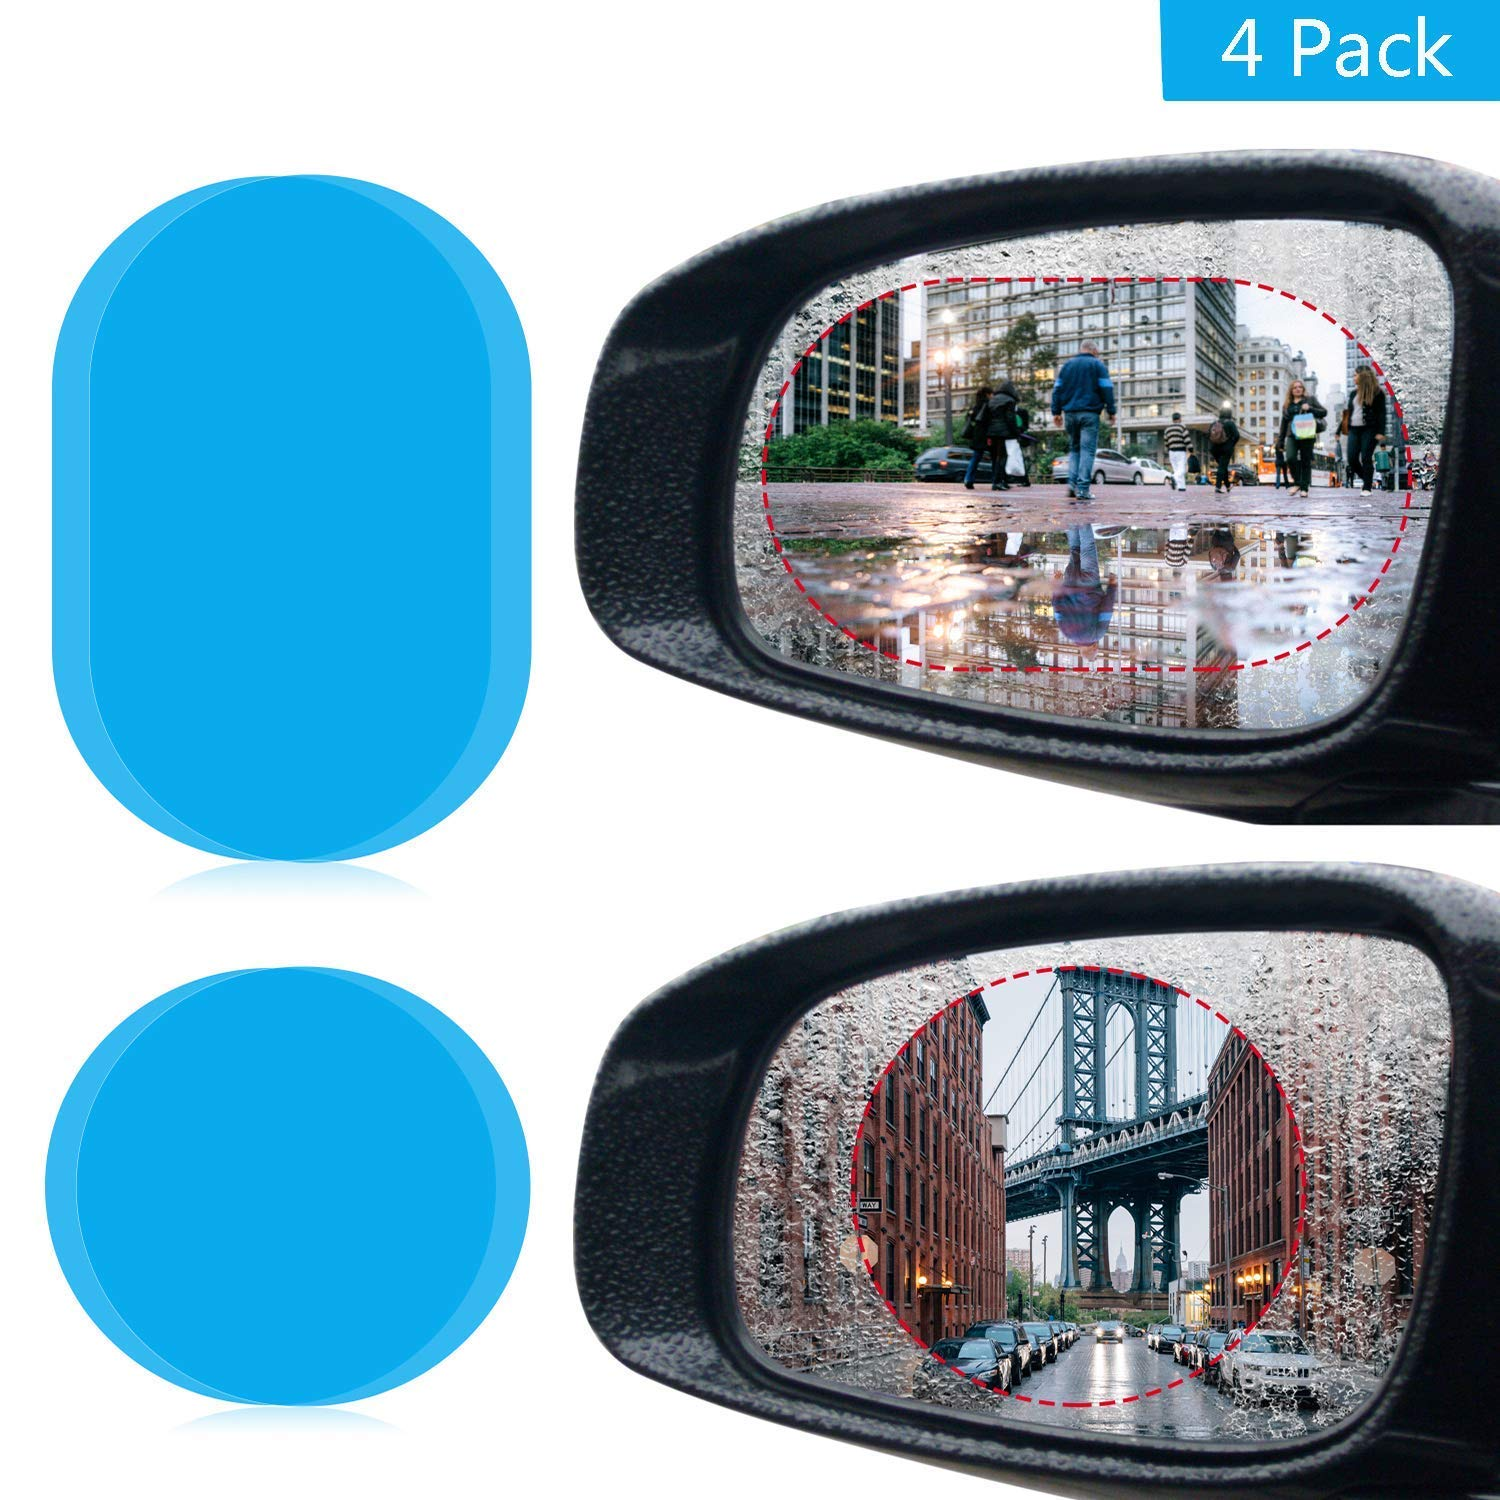 Car Rearview Mirror Film,JOLVVN Mirror Protective Nano Film with Anti Fog Film Anti-Glare Anti Mist Anti-Scratch Waterproof /& Rainproof Window Clear Glass Film for All Universal Cars 4 Pack